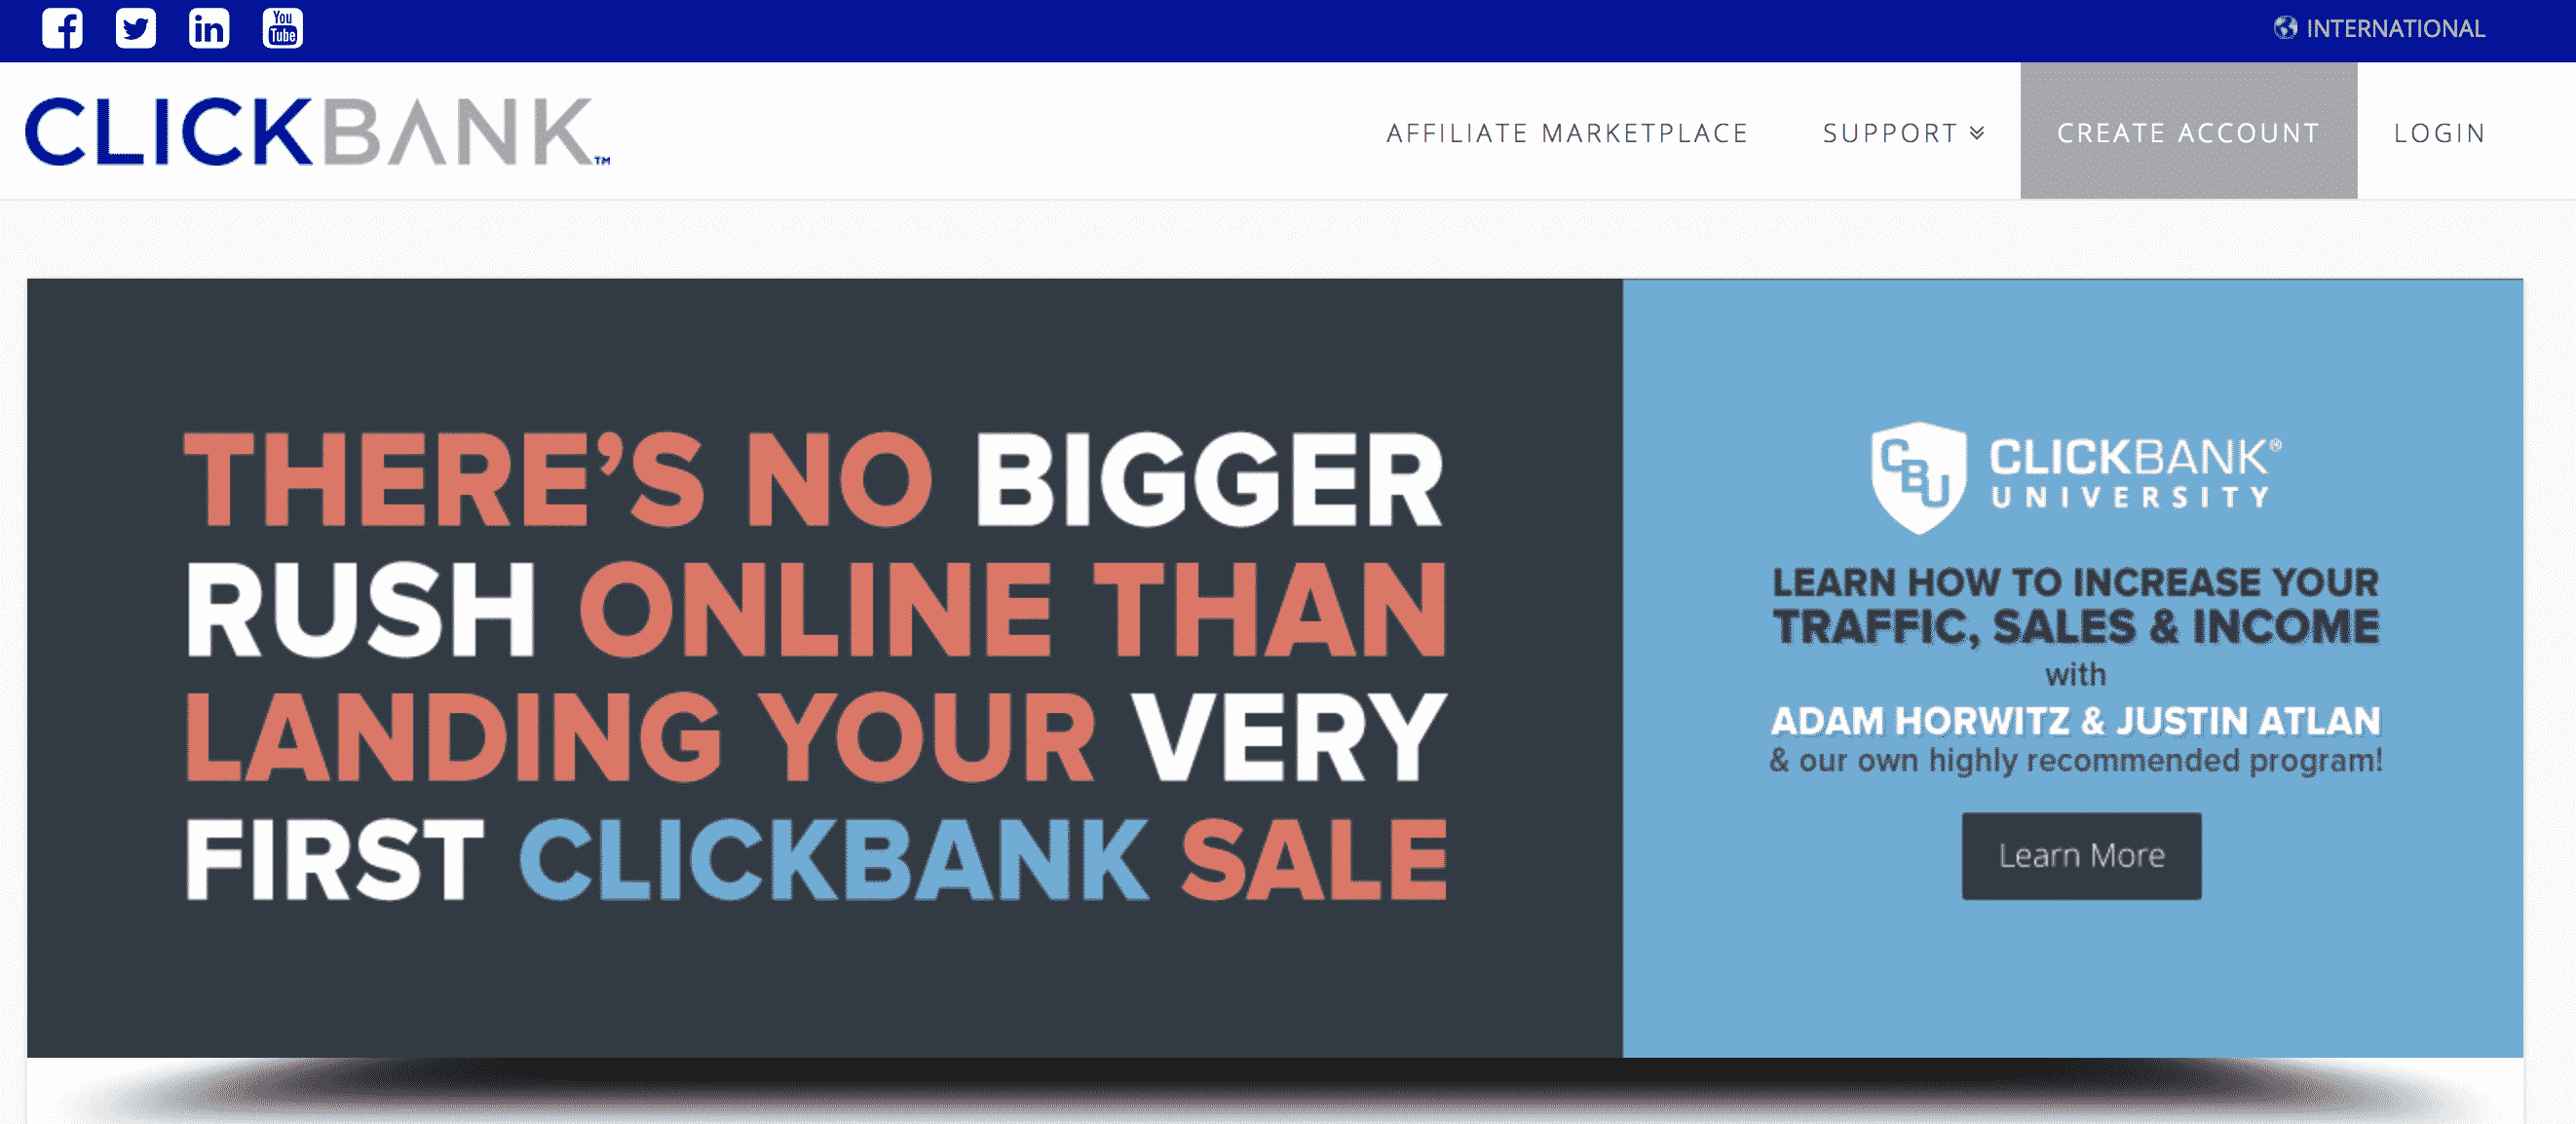 Clickbank Affiliate Marketing Website